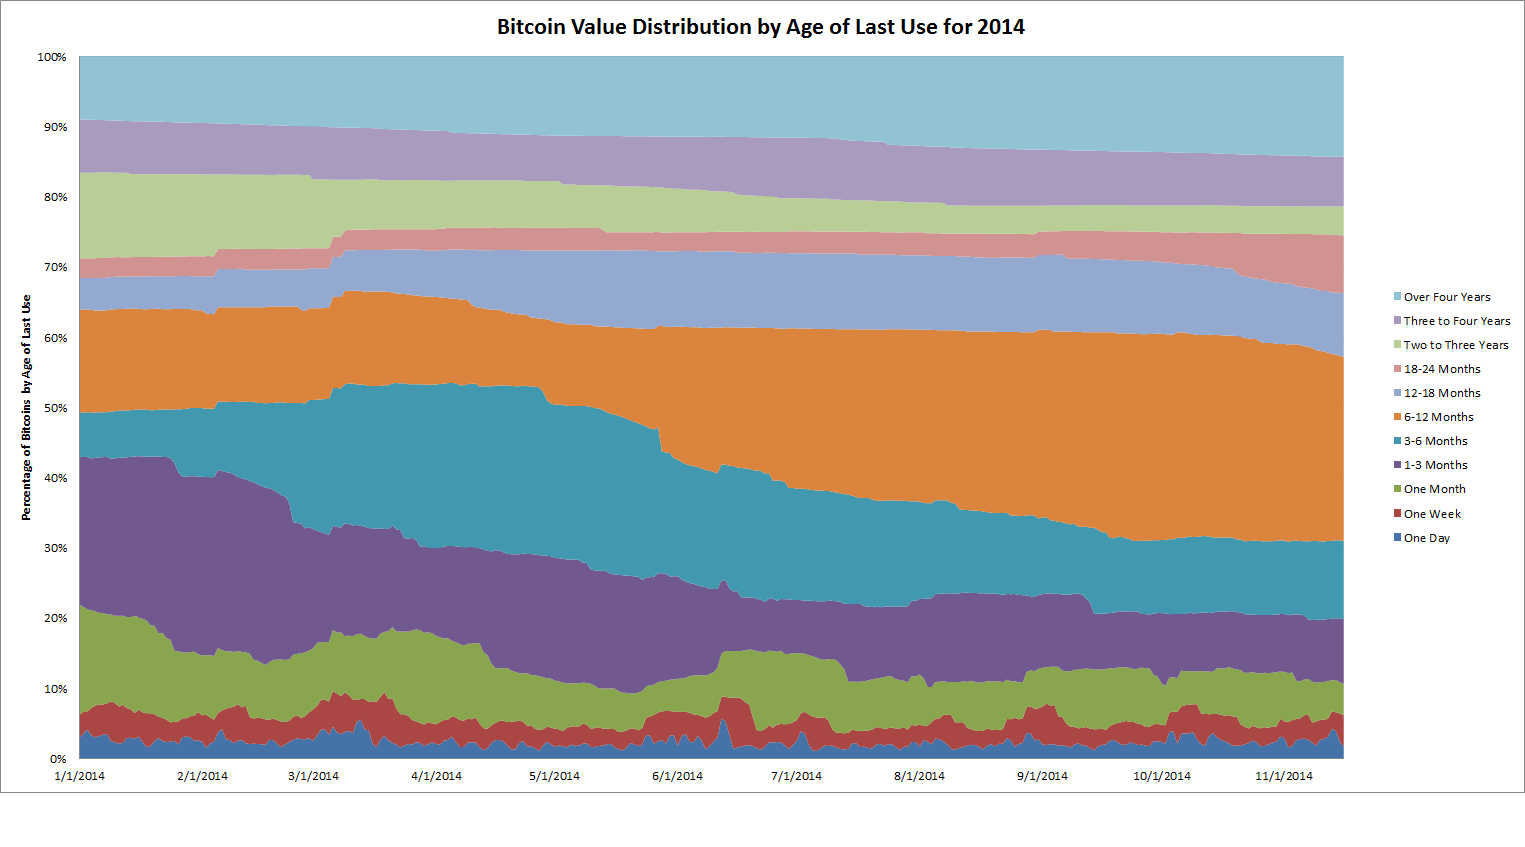 bitcoin distribution by age of last use